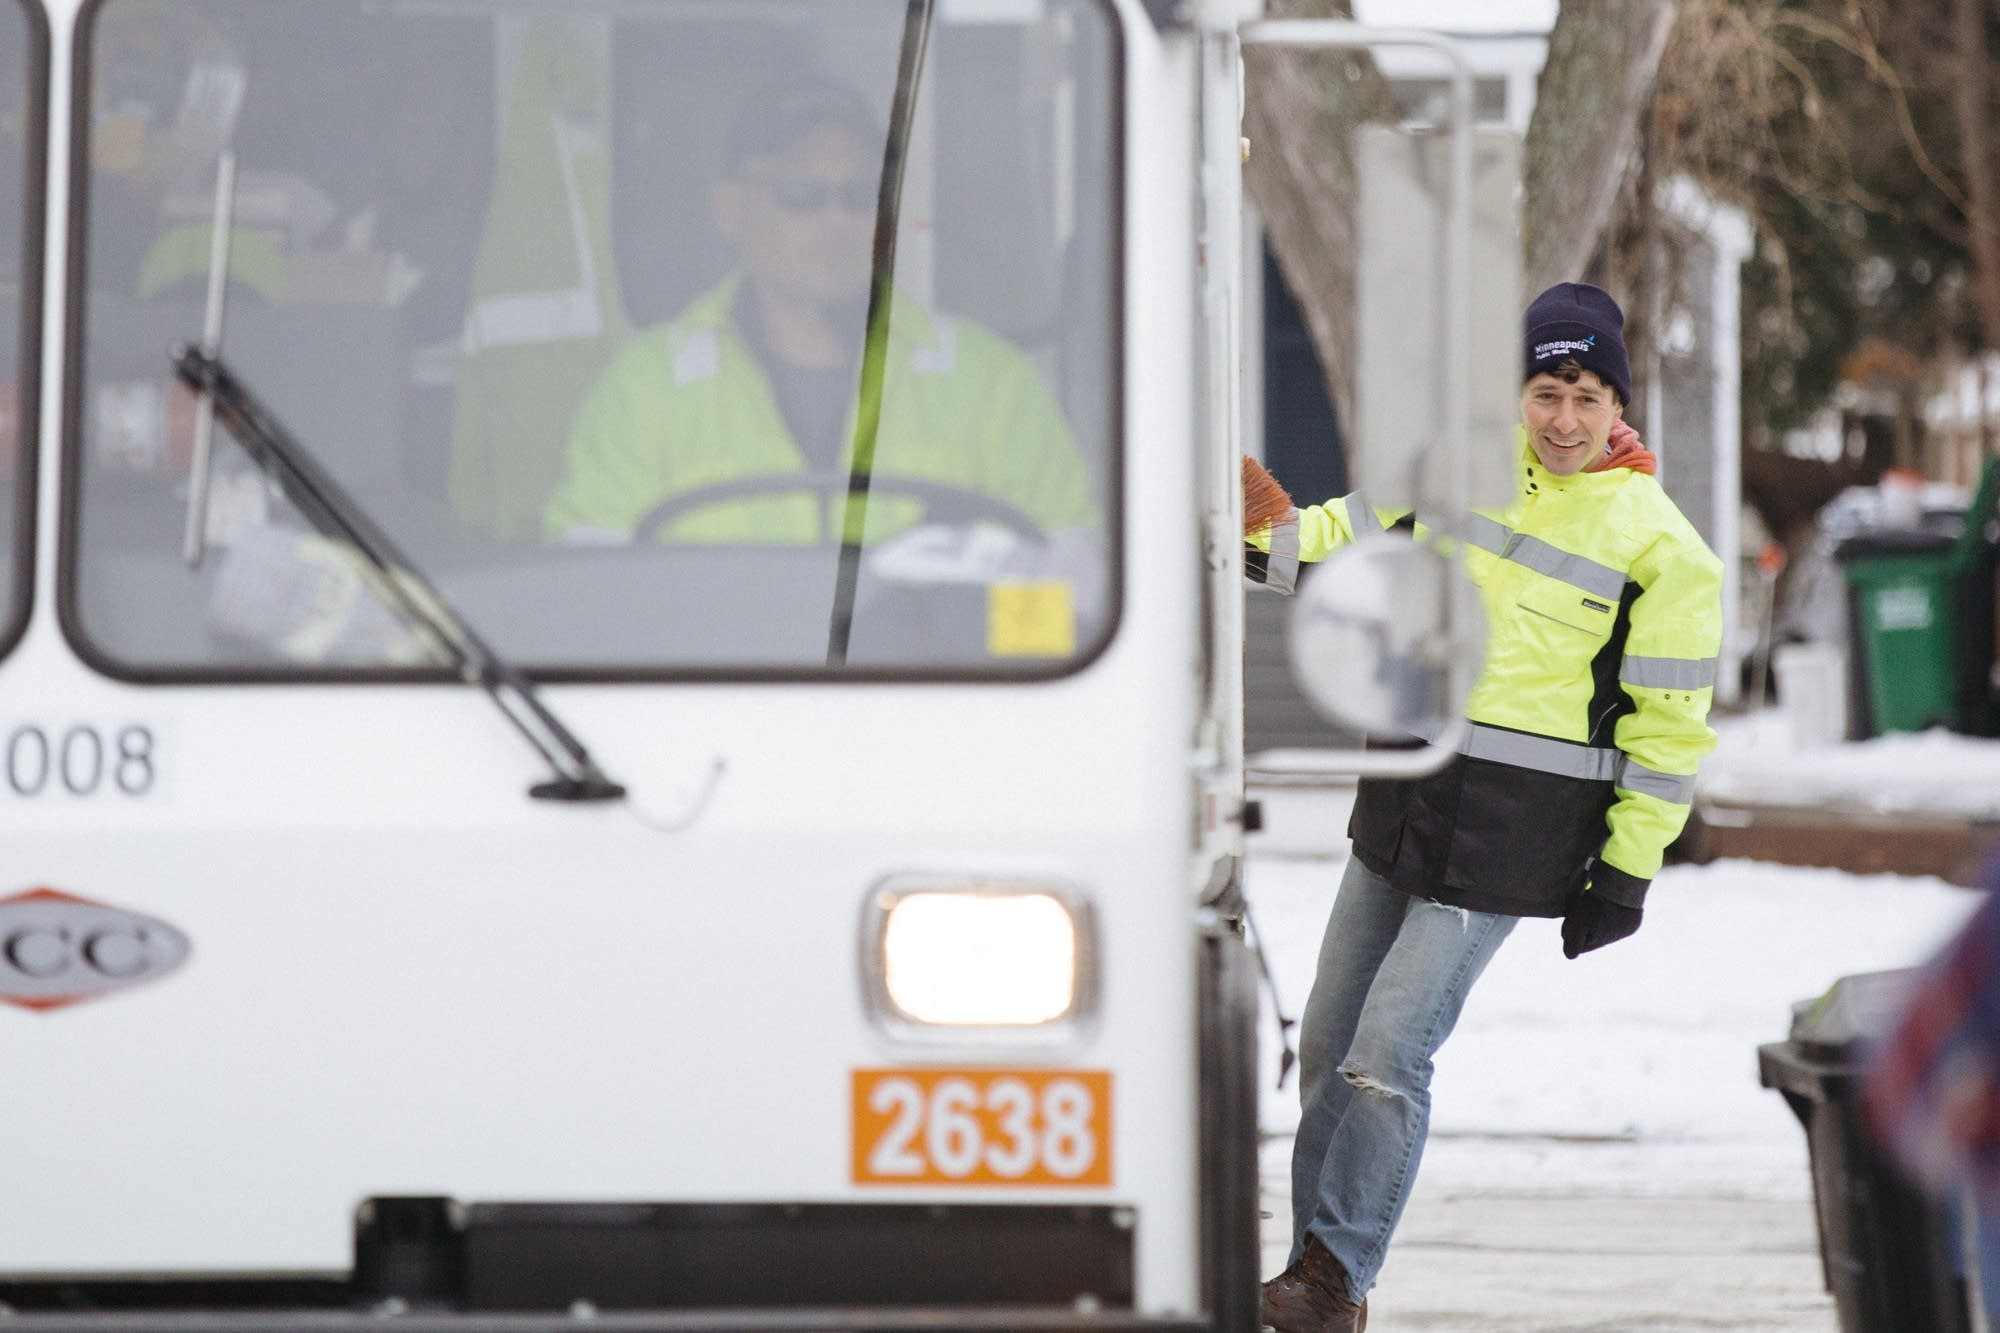 Jacob Frey rides on the back of an organics recycling truck.